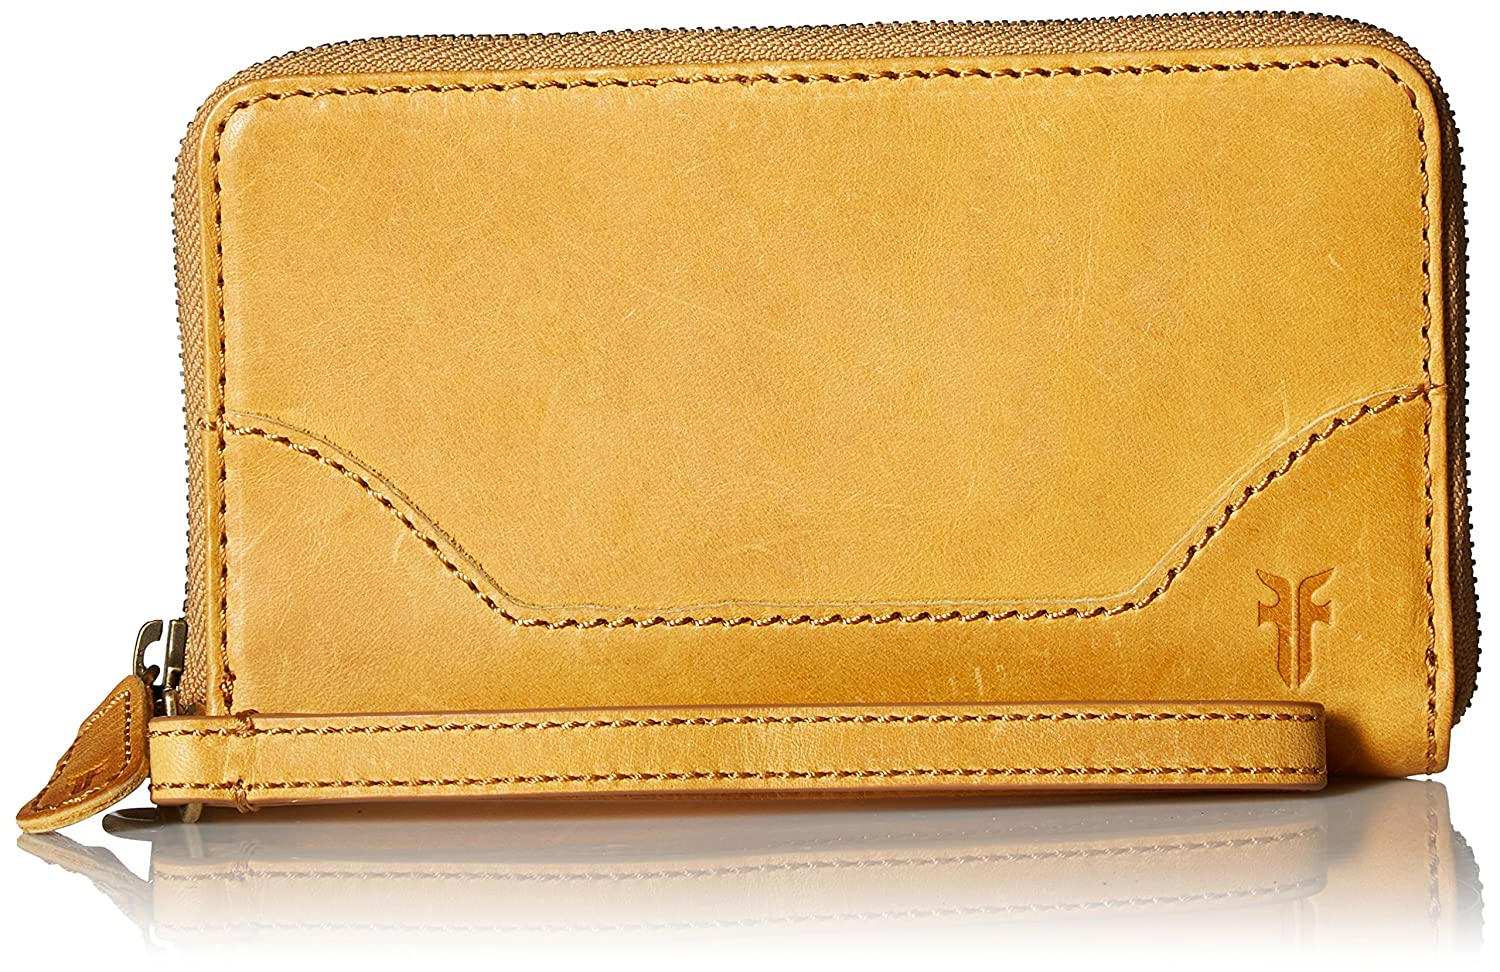 FRYE Melissa Leather Zip Phone Wallet FRYE Melissa Zip Phone Wallet Mustard 34DB392-MUS